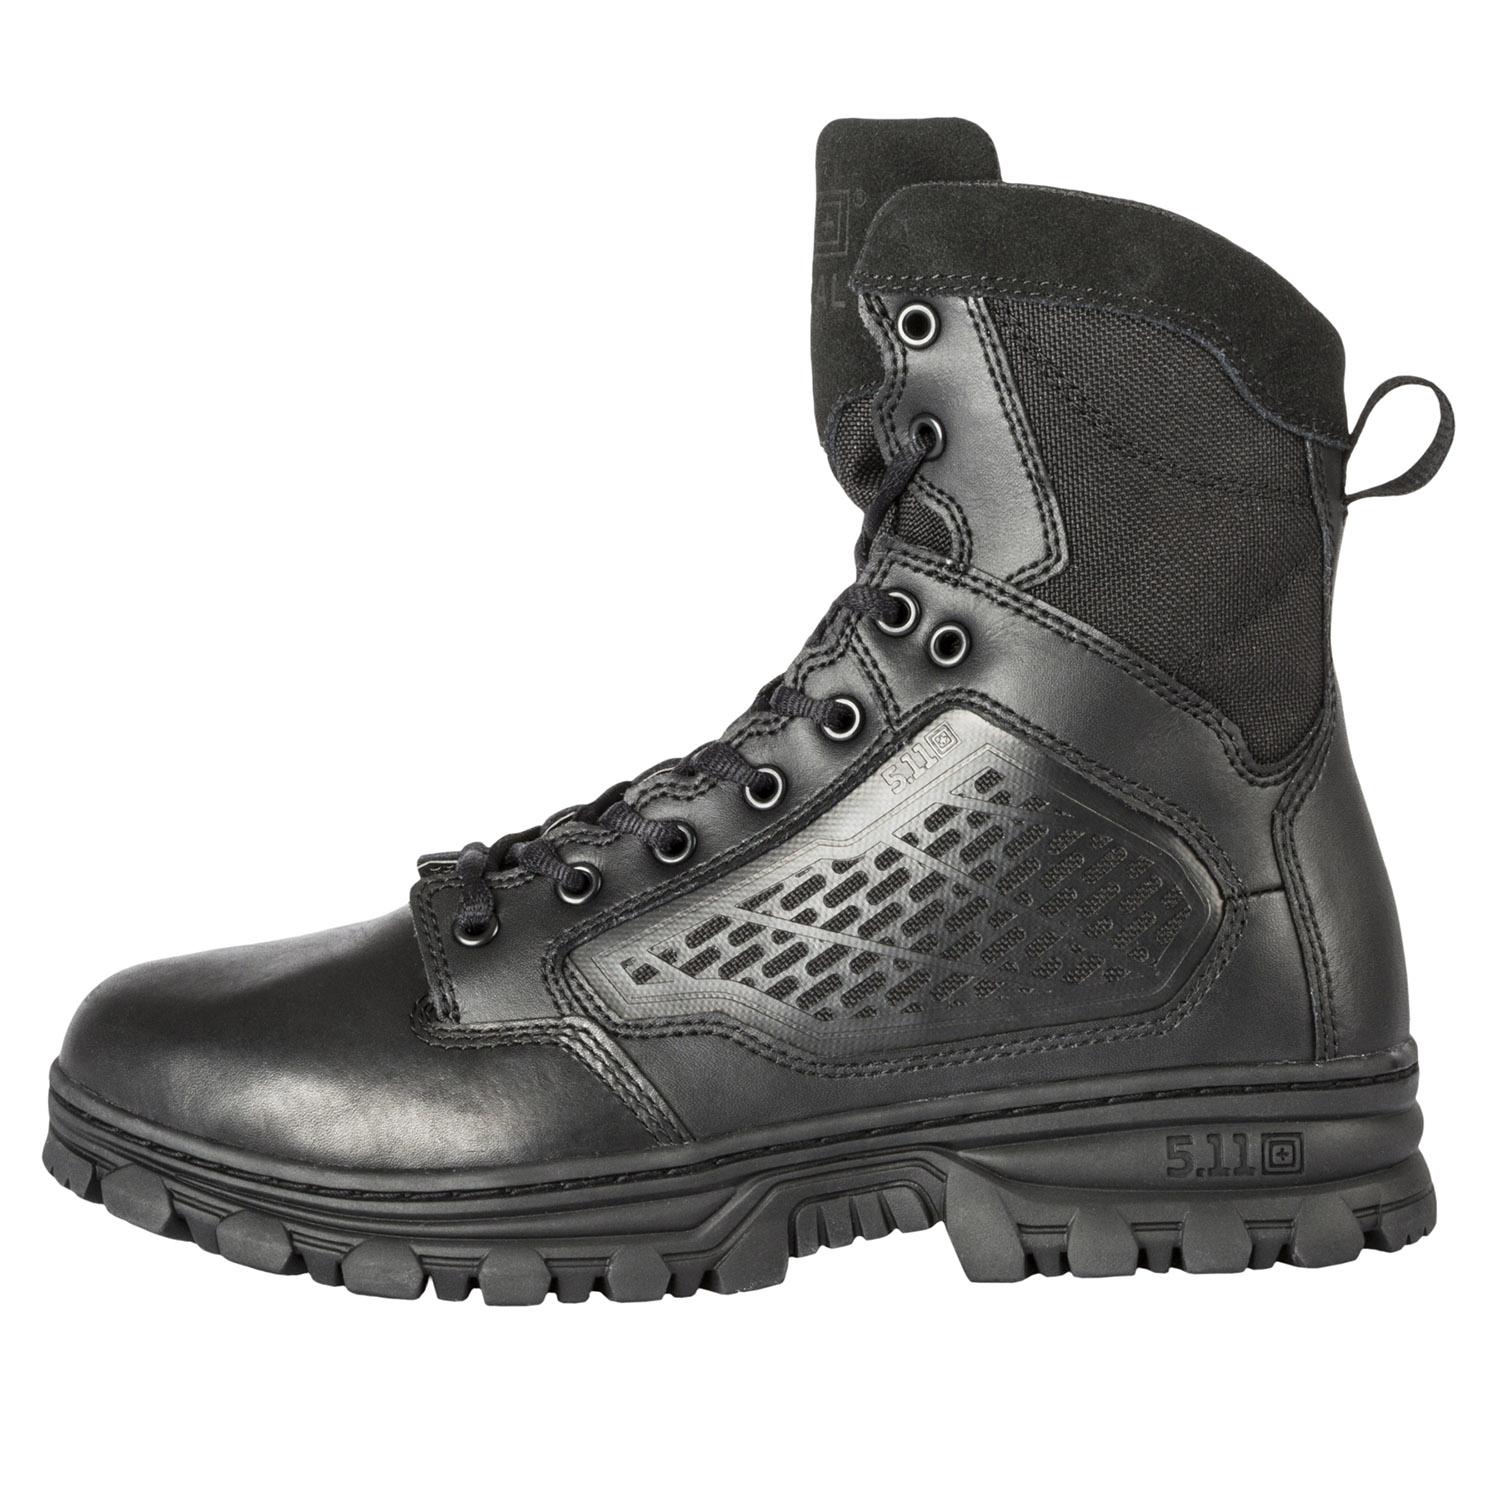 "5.11 Tactical 6"" EVO Boot"